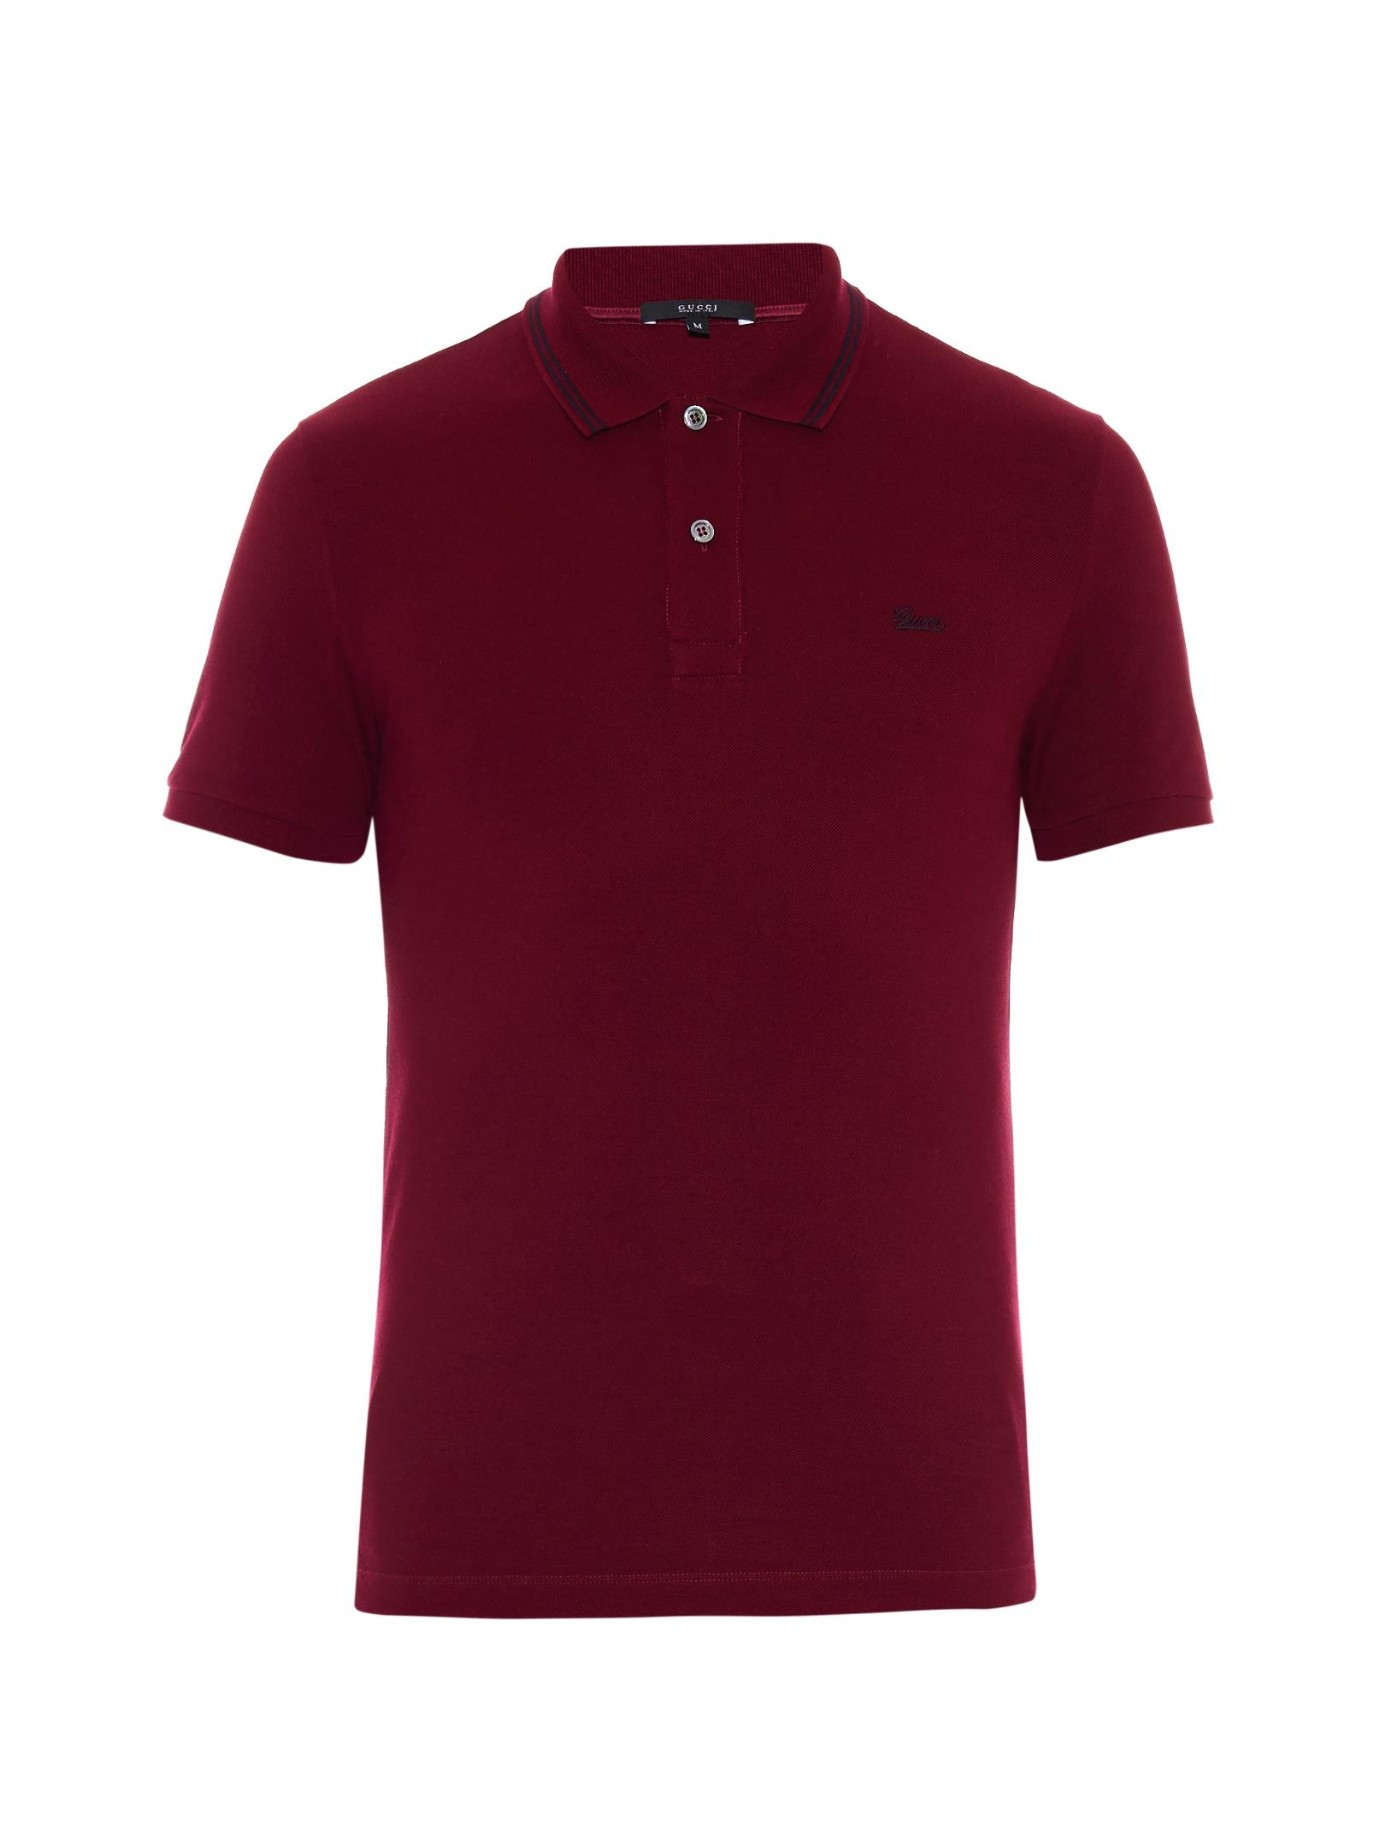 Lyst Gucci Striped Collar Polo Shirt In Purple For Men